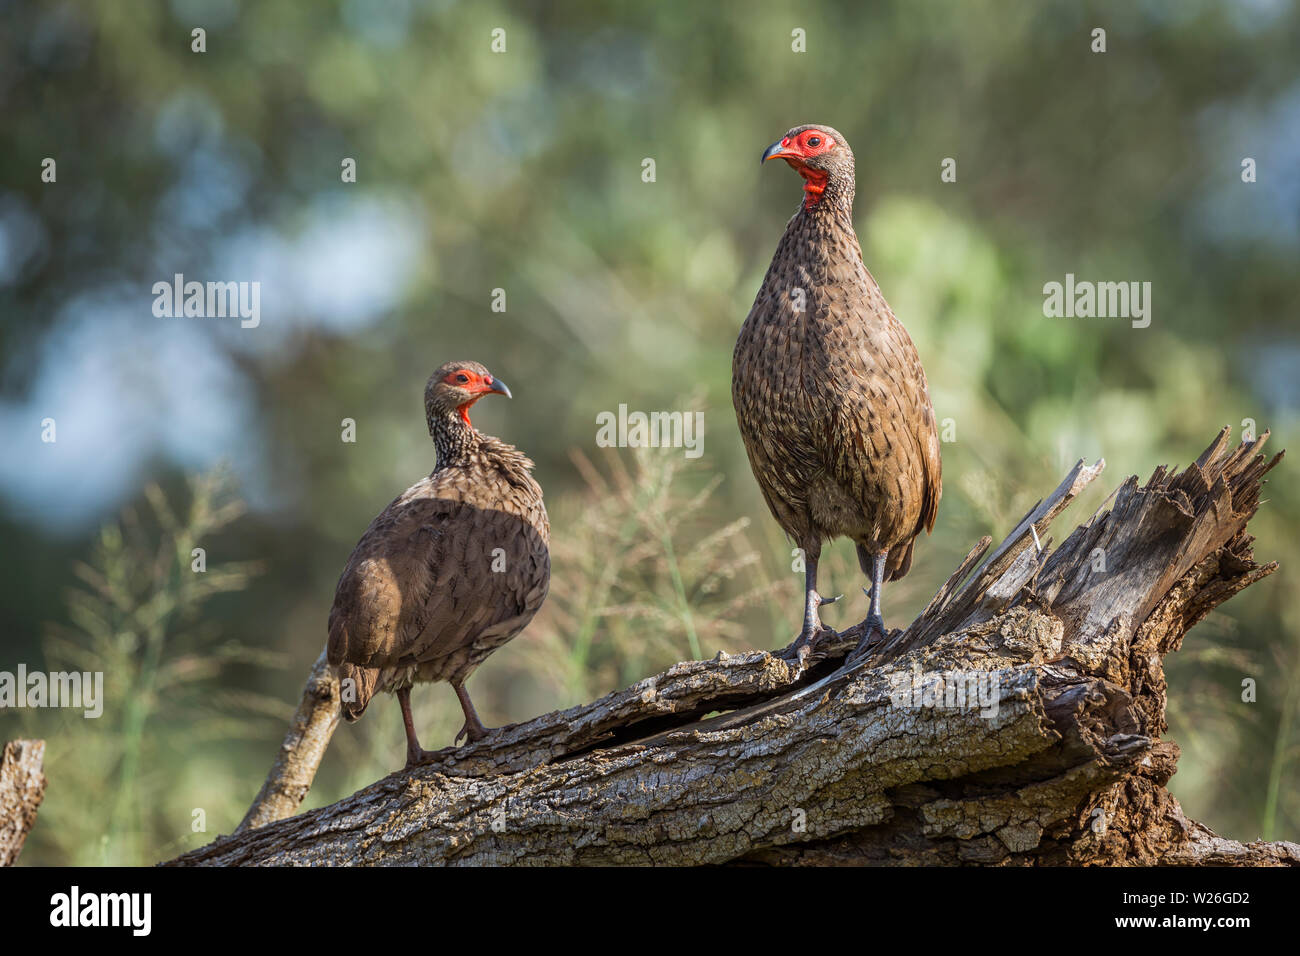 Couple of Swainson's Spurfowl perched on log in Kruger National park, South Africa ; Specie Pternistis swainsonii family of Phasianidae Stock Photo